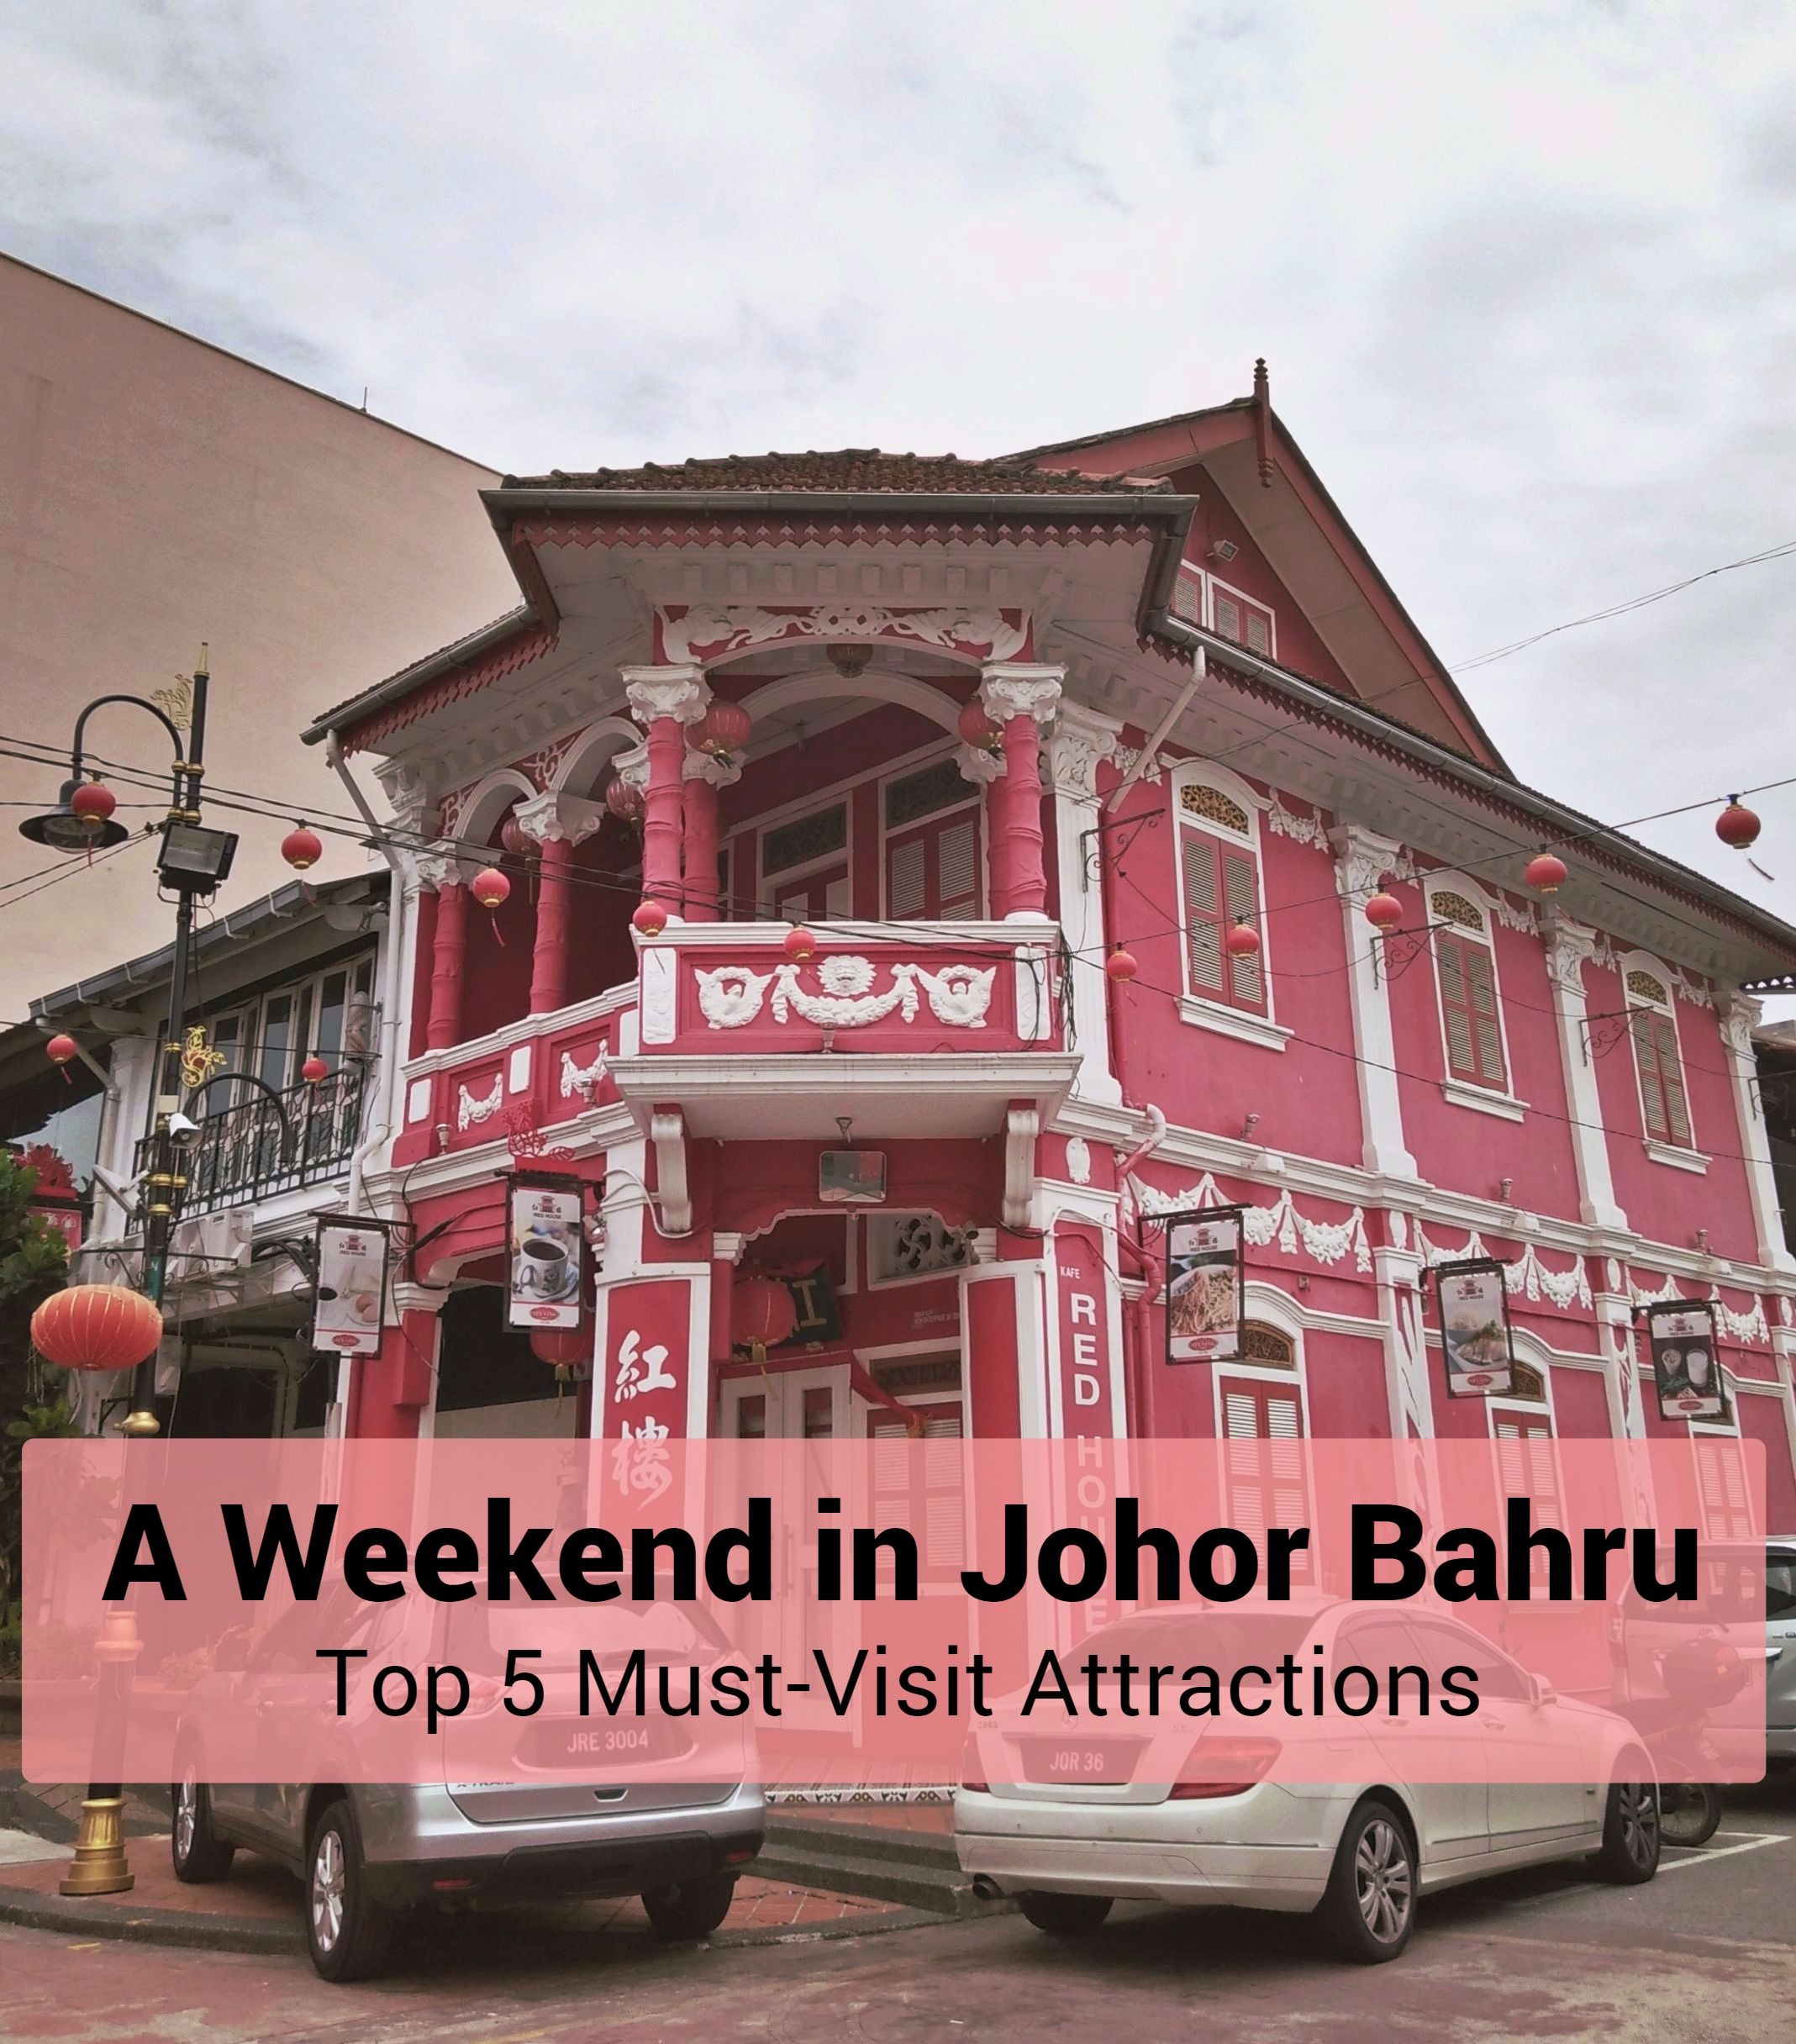 A Weekend in Johor Bahru: Top 5 Must-Visit Attractions